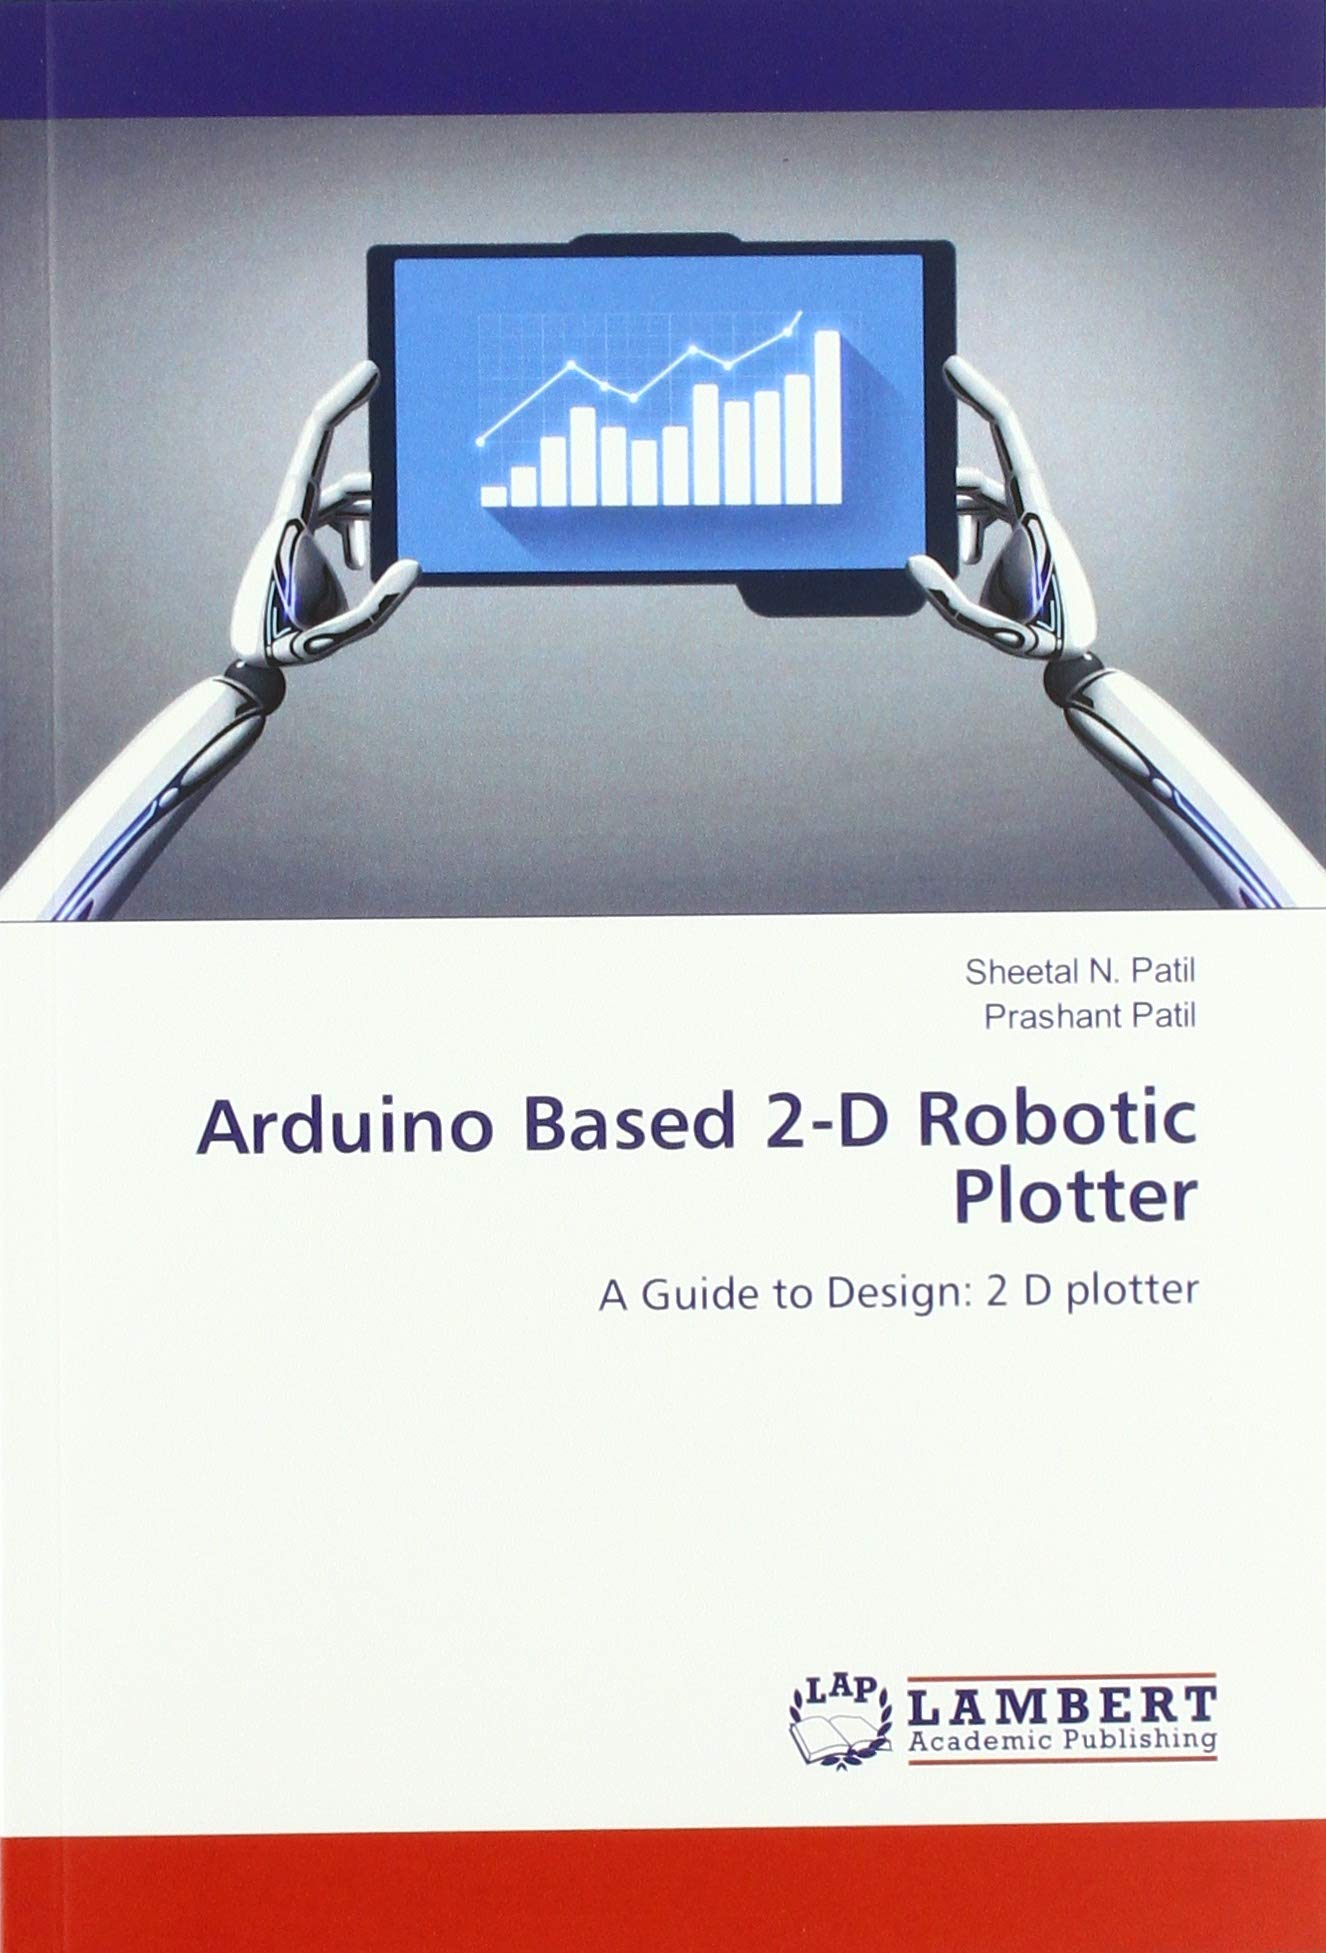 Arduino Based 2-D Robotic Plotter: A Guide to Design: 2 D plotter: Amazon.es: Patil, Sheetal N., Patil, Prashant: Libros en idiomas extranjeros